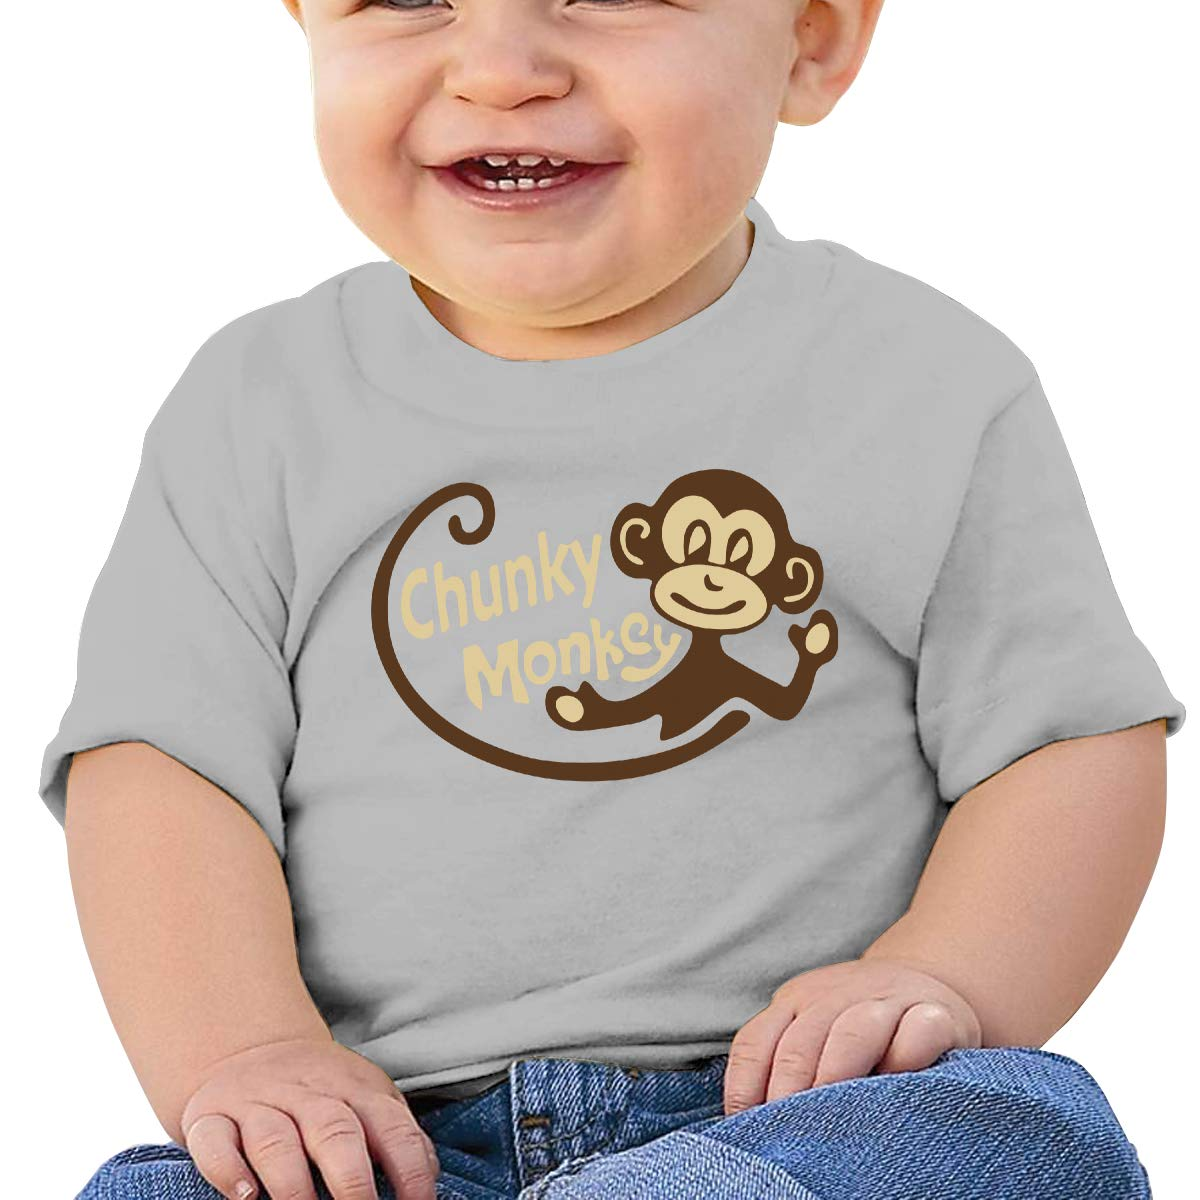 Baby T-Shirt,Child,Banana Chunky Monkey UBaby Boy Girl Short Sleeve T-Shirt Tops Casual Outfit Black